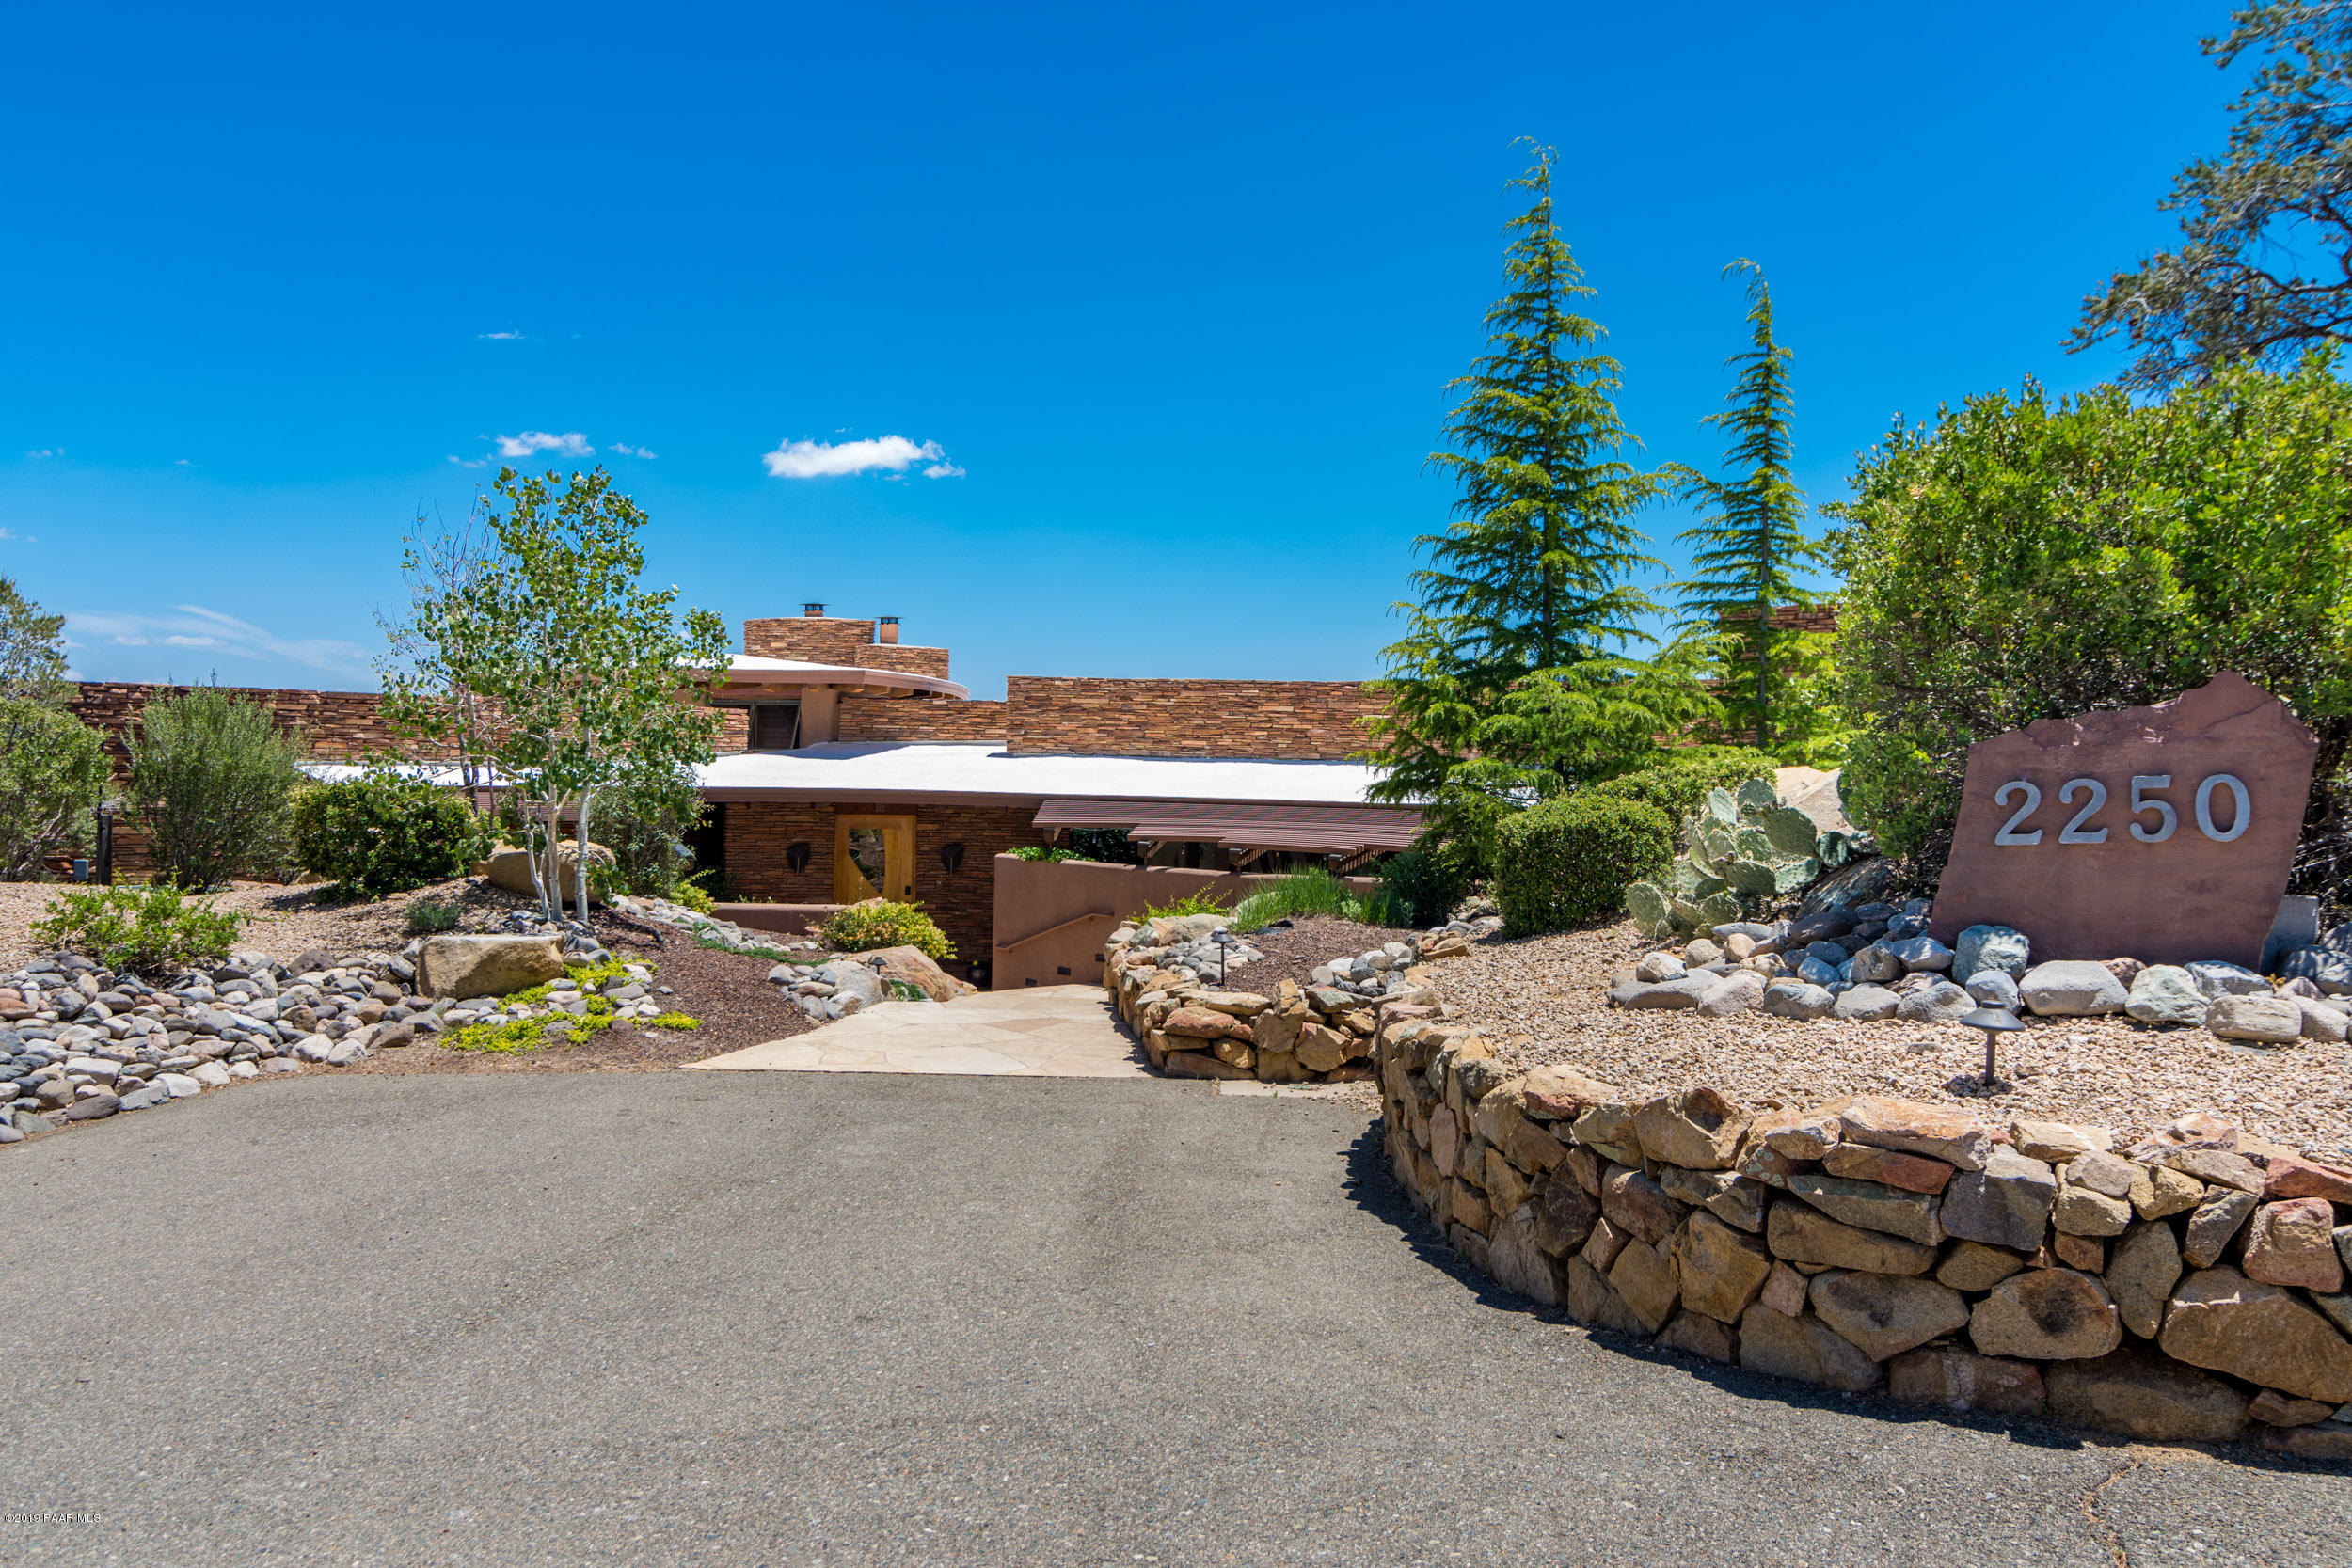 Photo of 2250 Aspen Acres Drive, Prescott, AZ 86303